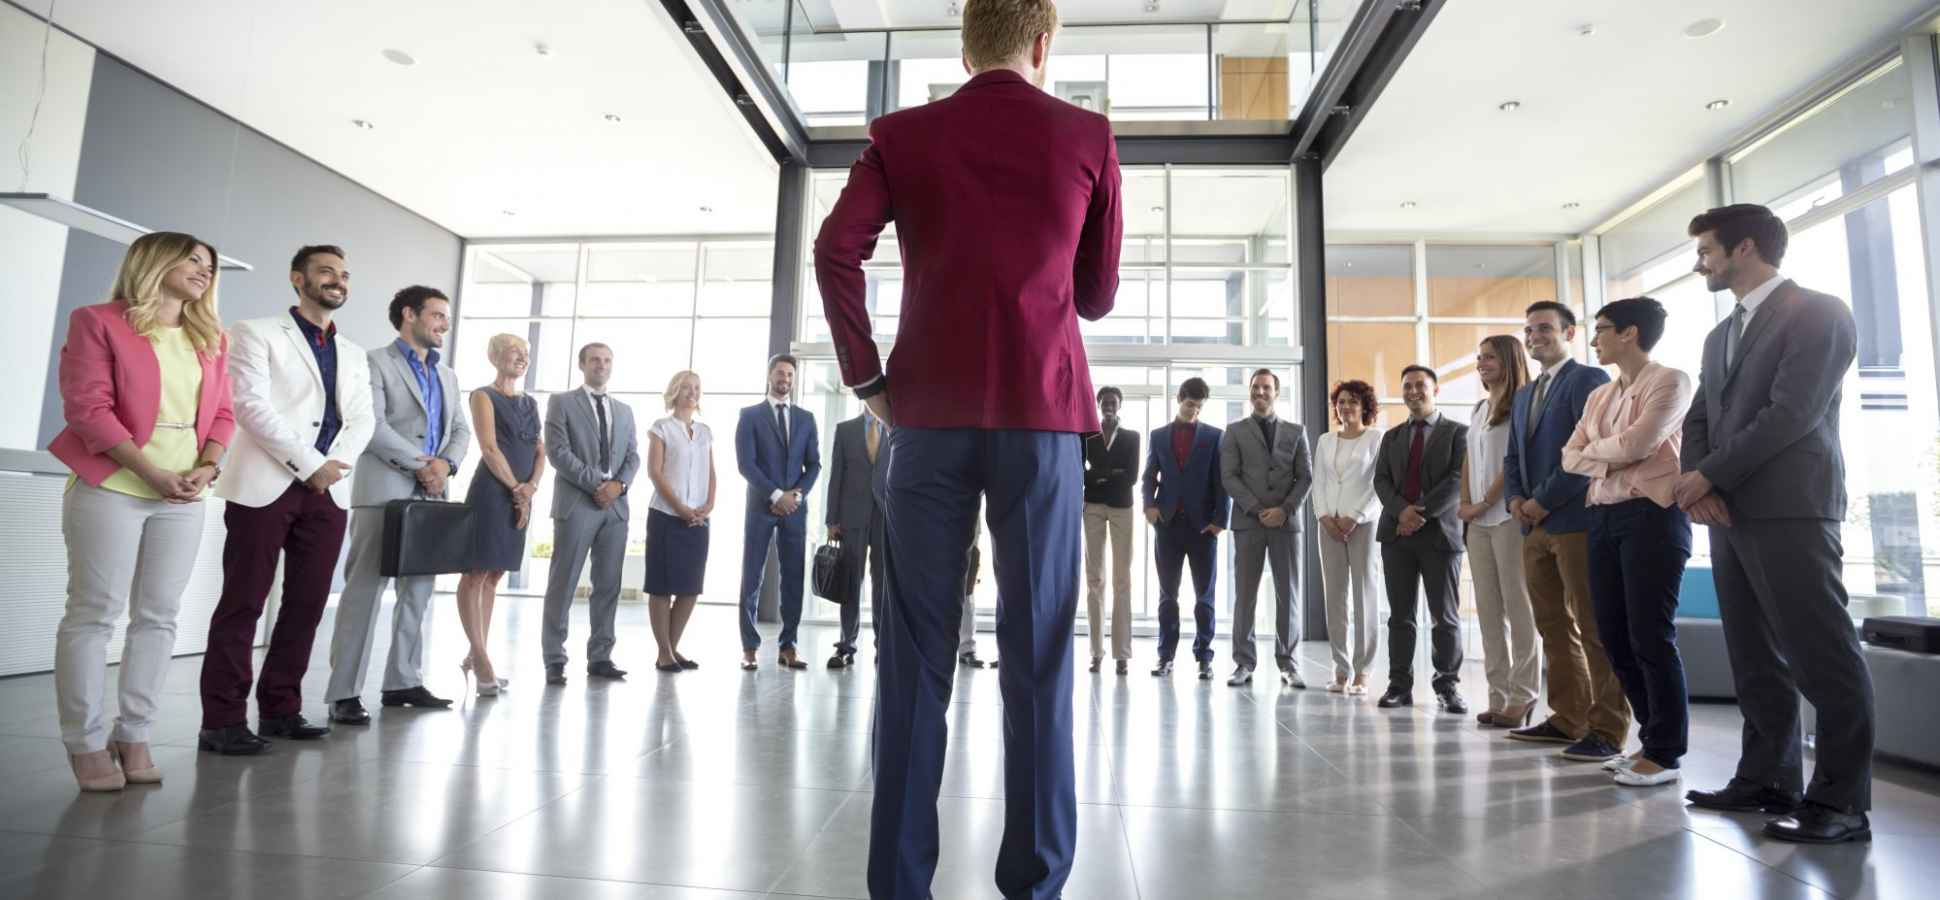 It's Time to Redefine What a Manager Really Is